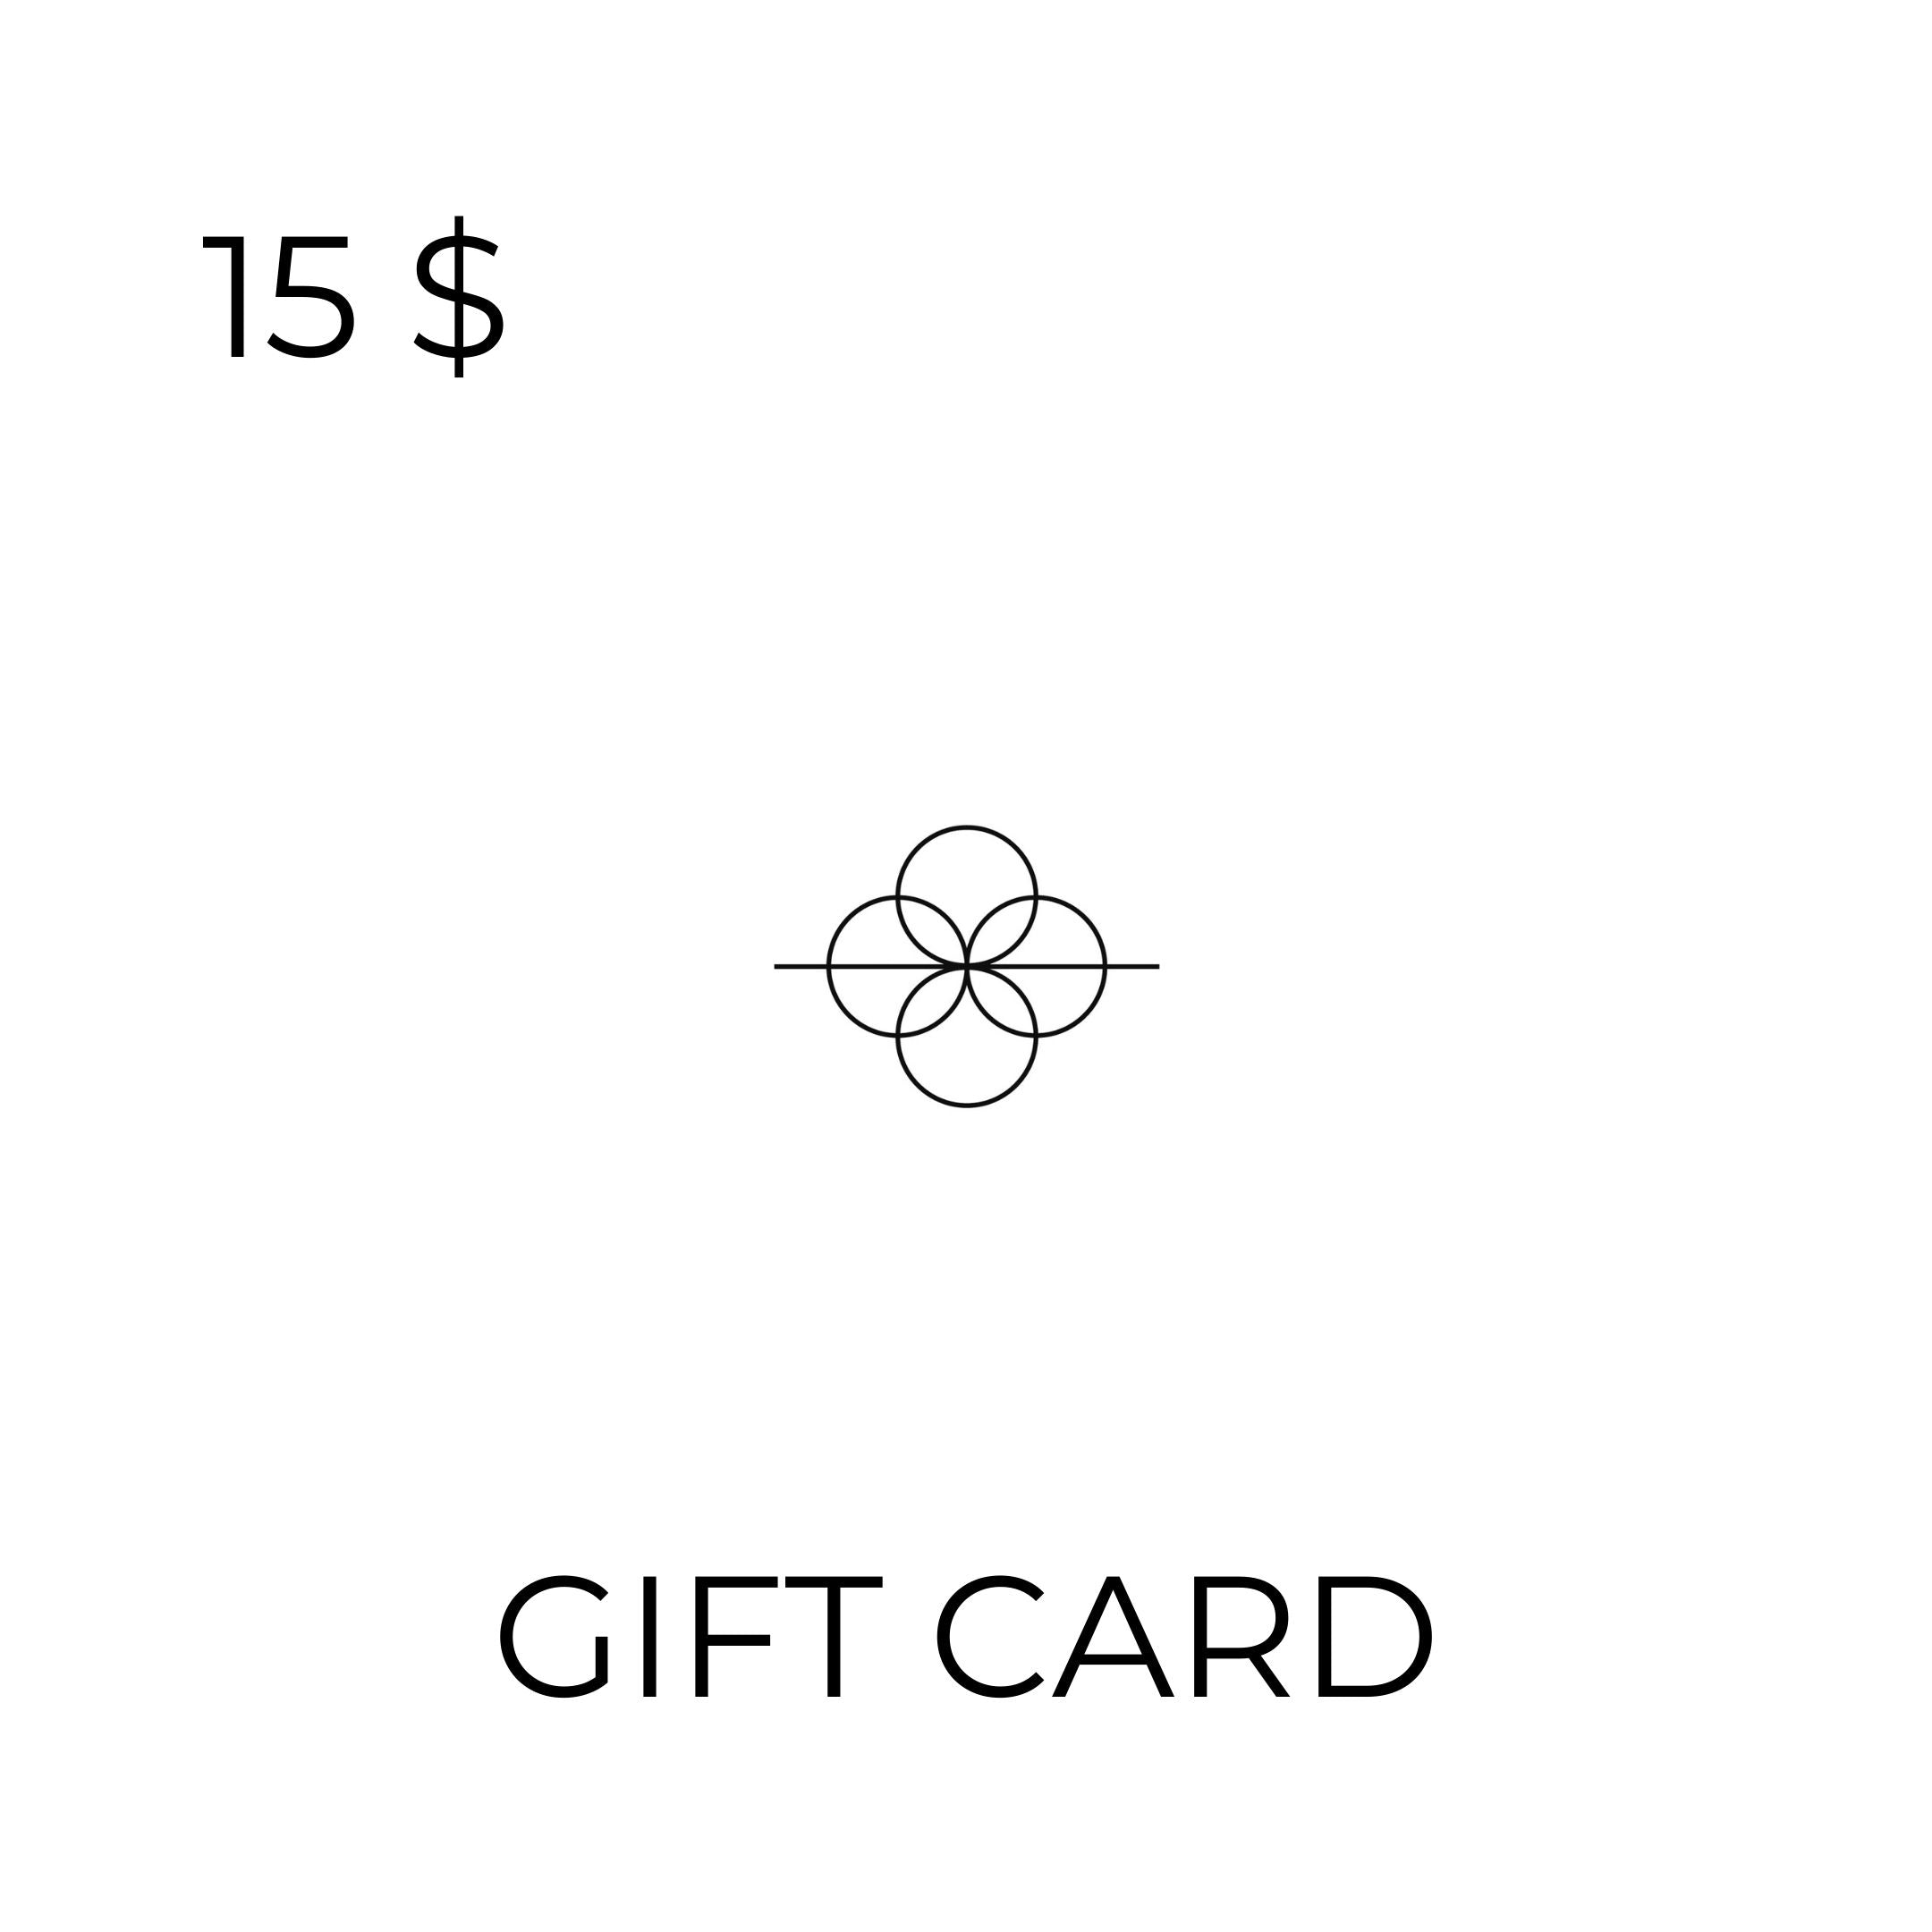 >>> CHOOSE YOUR GIFT CARD HERE ($15, $25, $50, $100) <<<